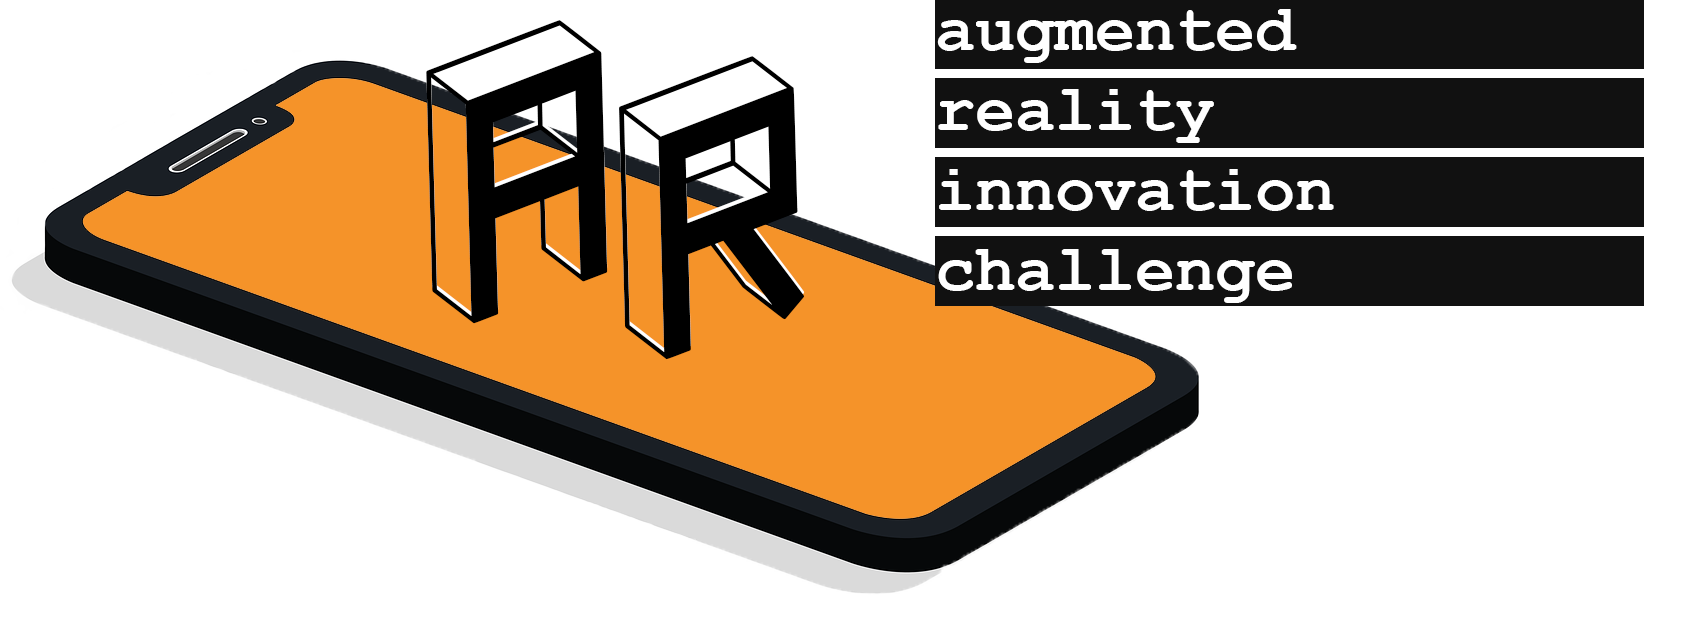 Image of phone with letters A and R on it with text Augmented Reality Innovation Challenge